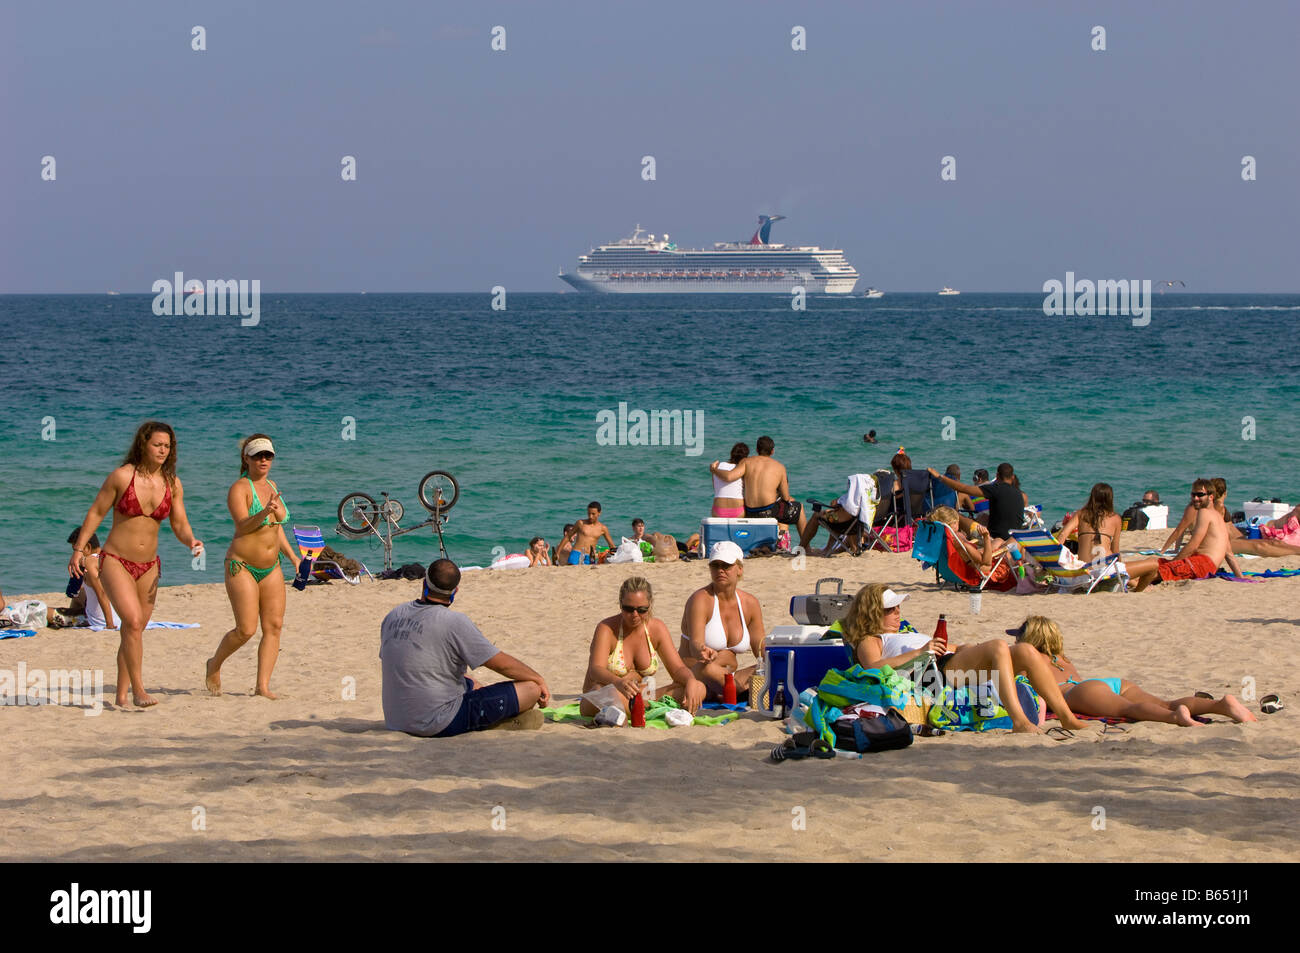 People Relaxing On A Beach Fort Lauderdale Gold Coast Florida United States Of America